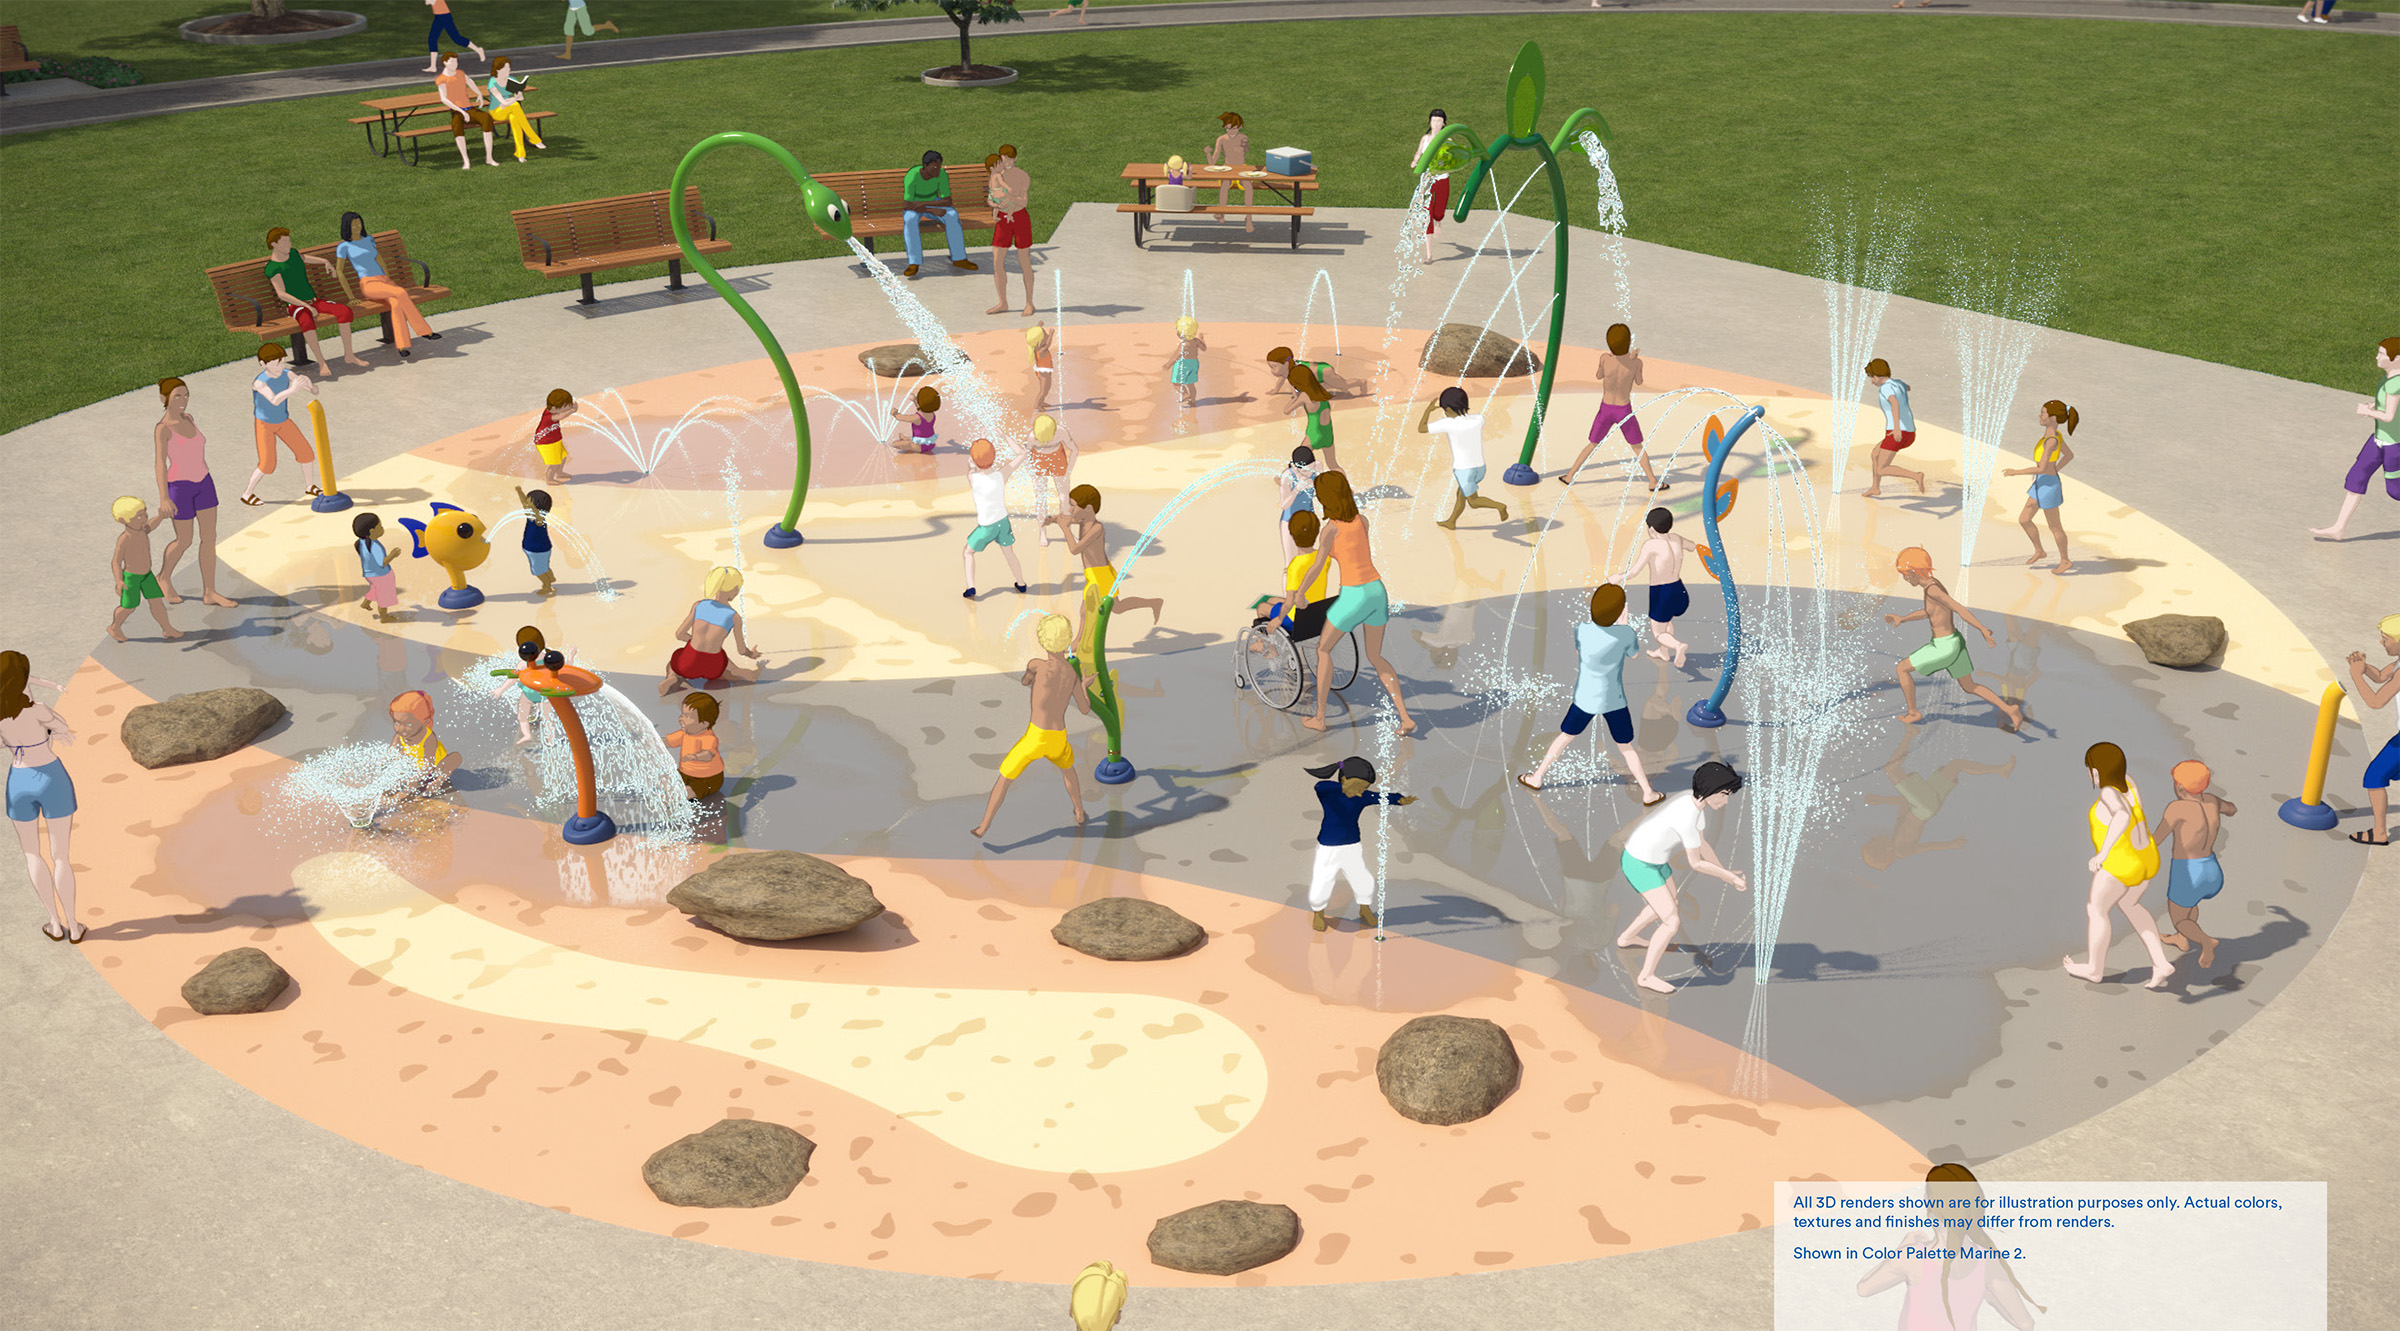 """A rendering of the new splash pad for Earlscourt Park, featuring a """"by the sea"""" theme. The renderings includes children and families playing around the spray elements, play stream with boulders, new seating and shade umbrellas."""